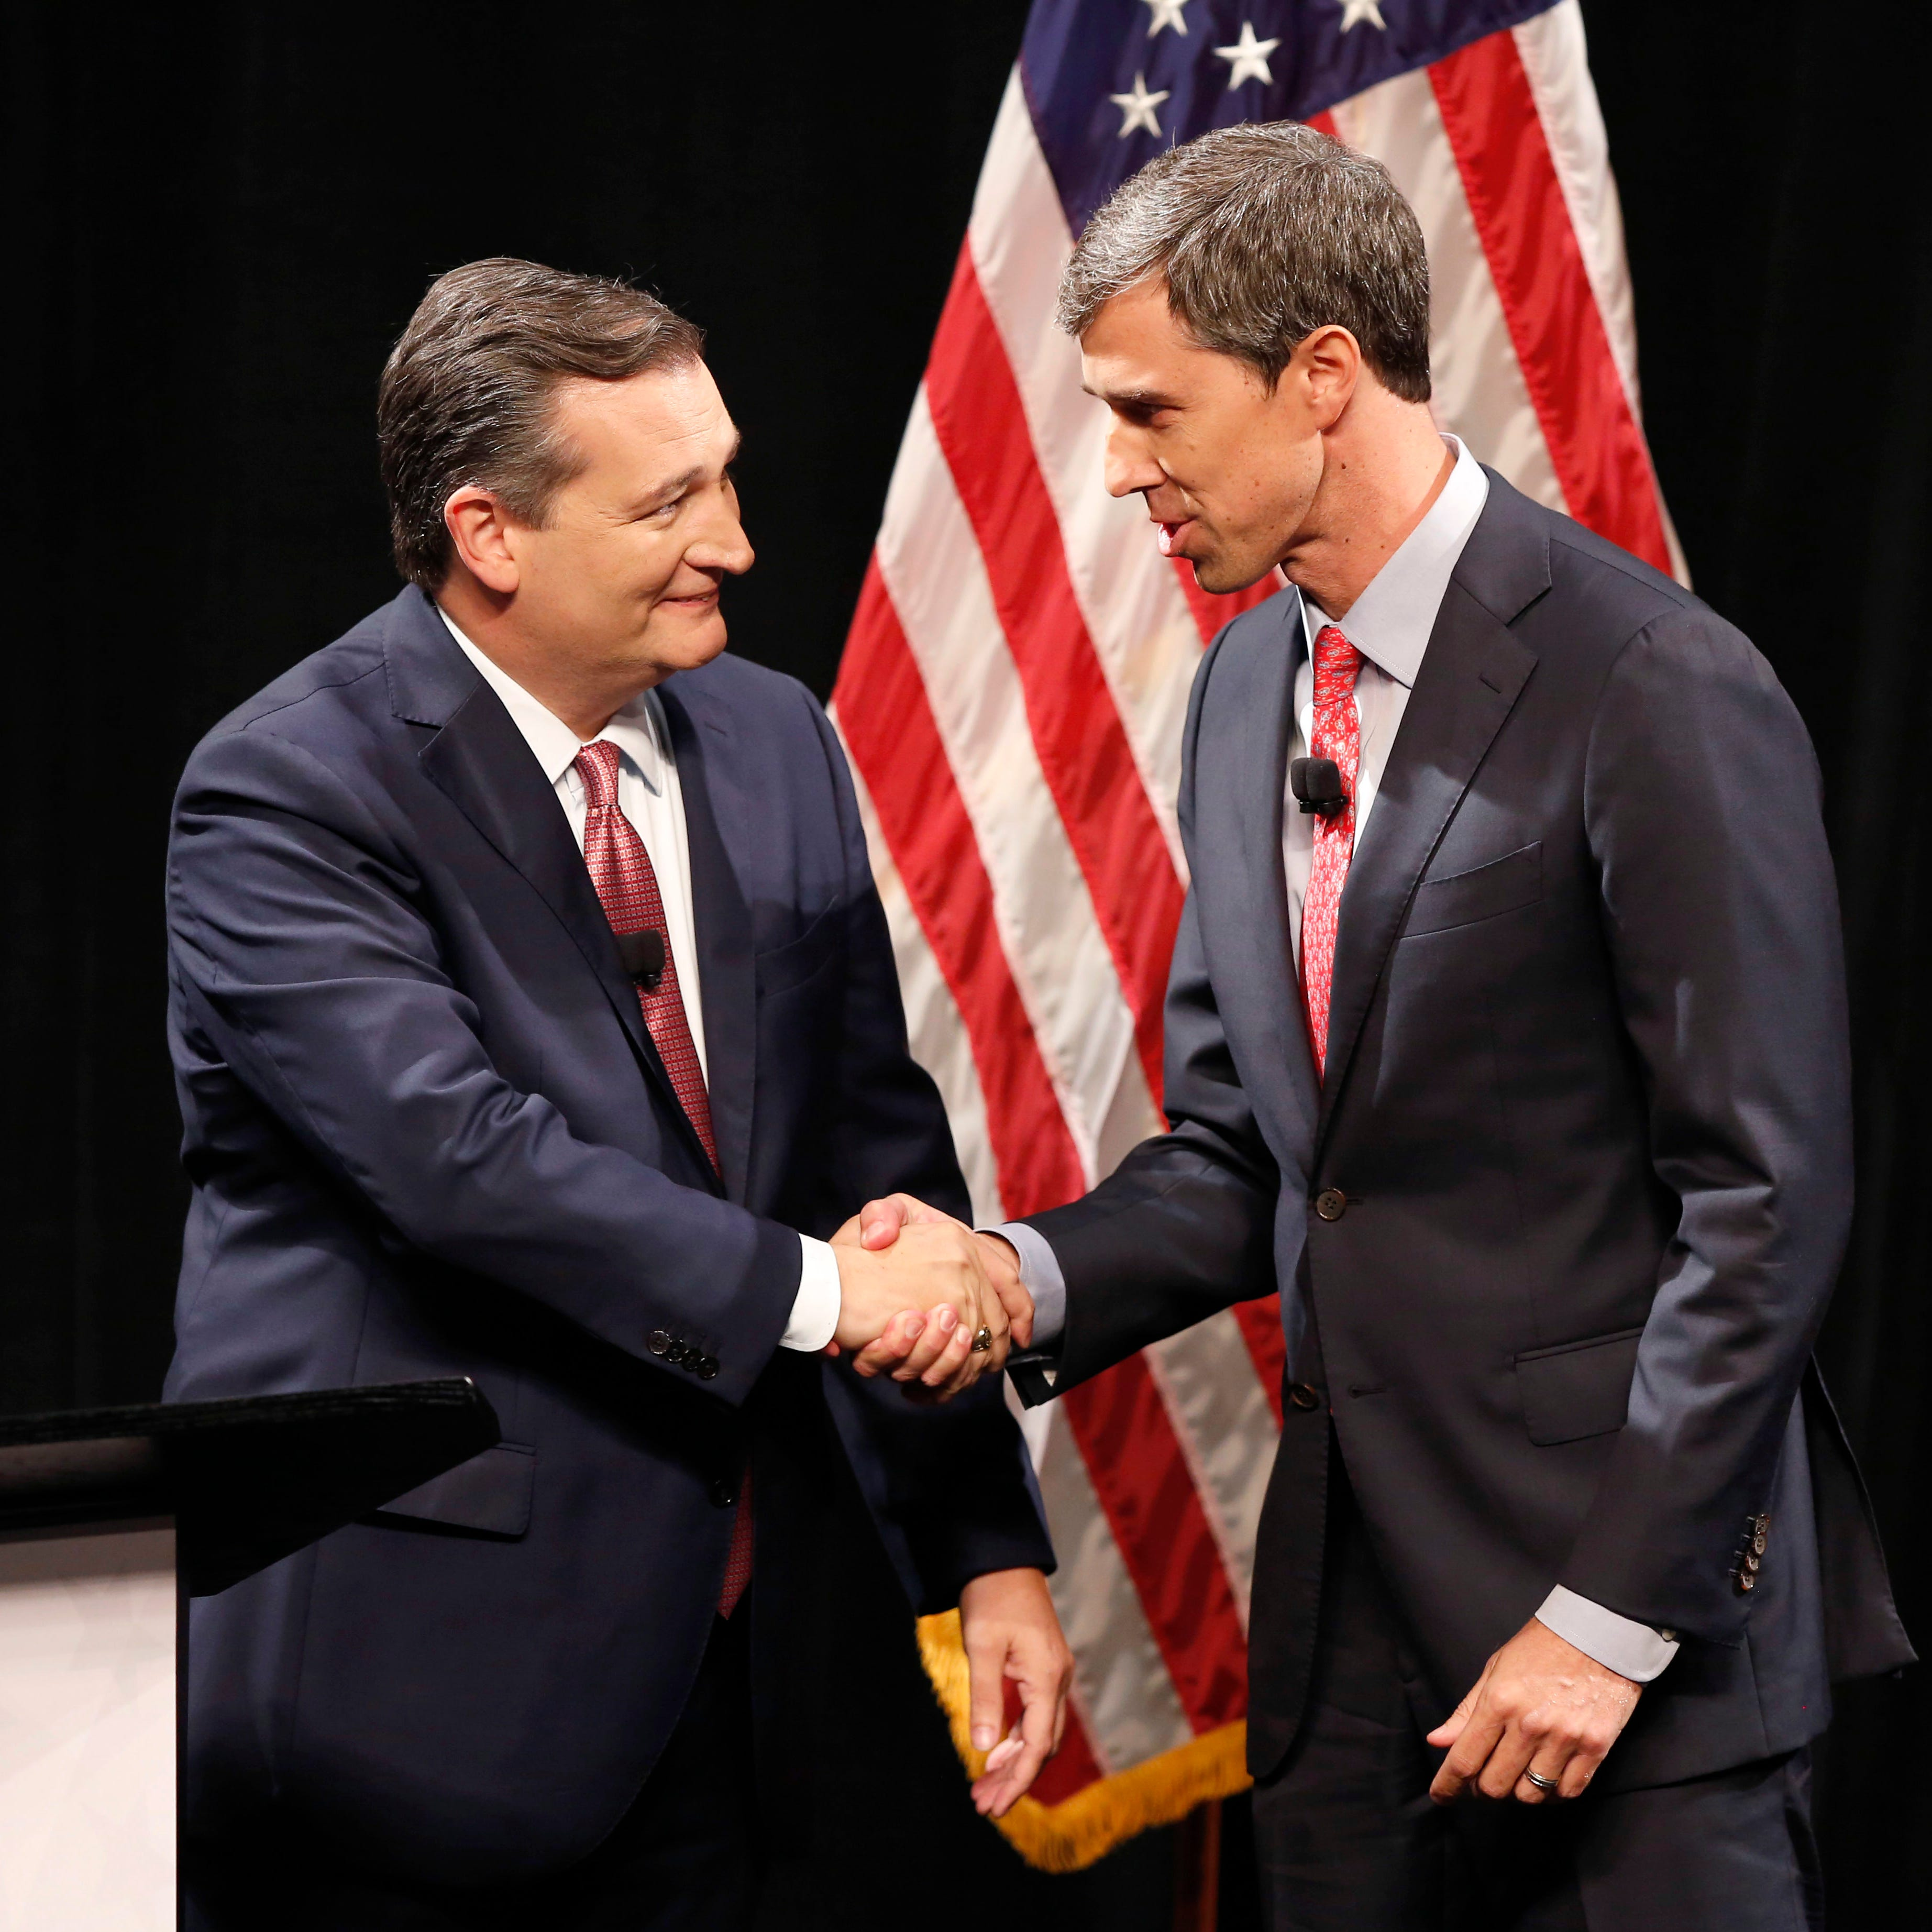 Experts say Ted Cruz wins first debate on style while Beto O'Rourke scores on likability